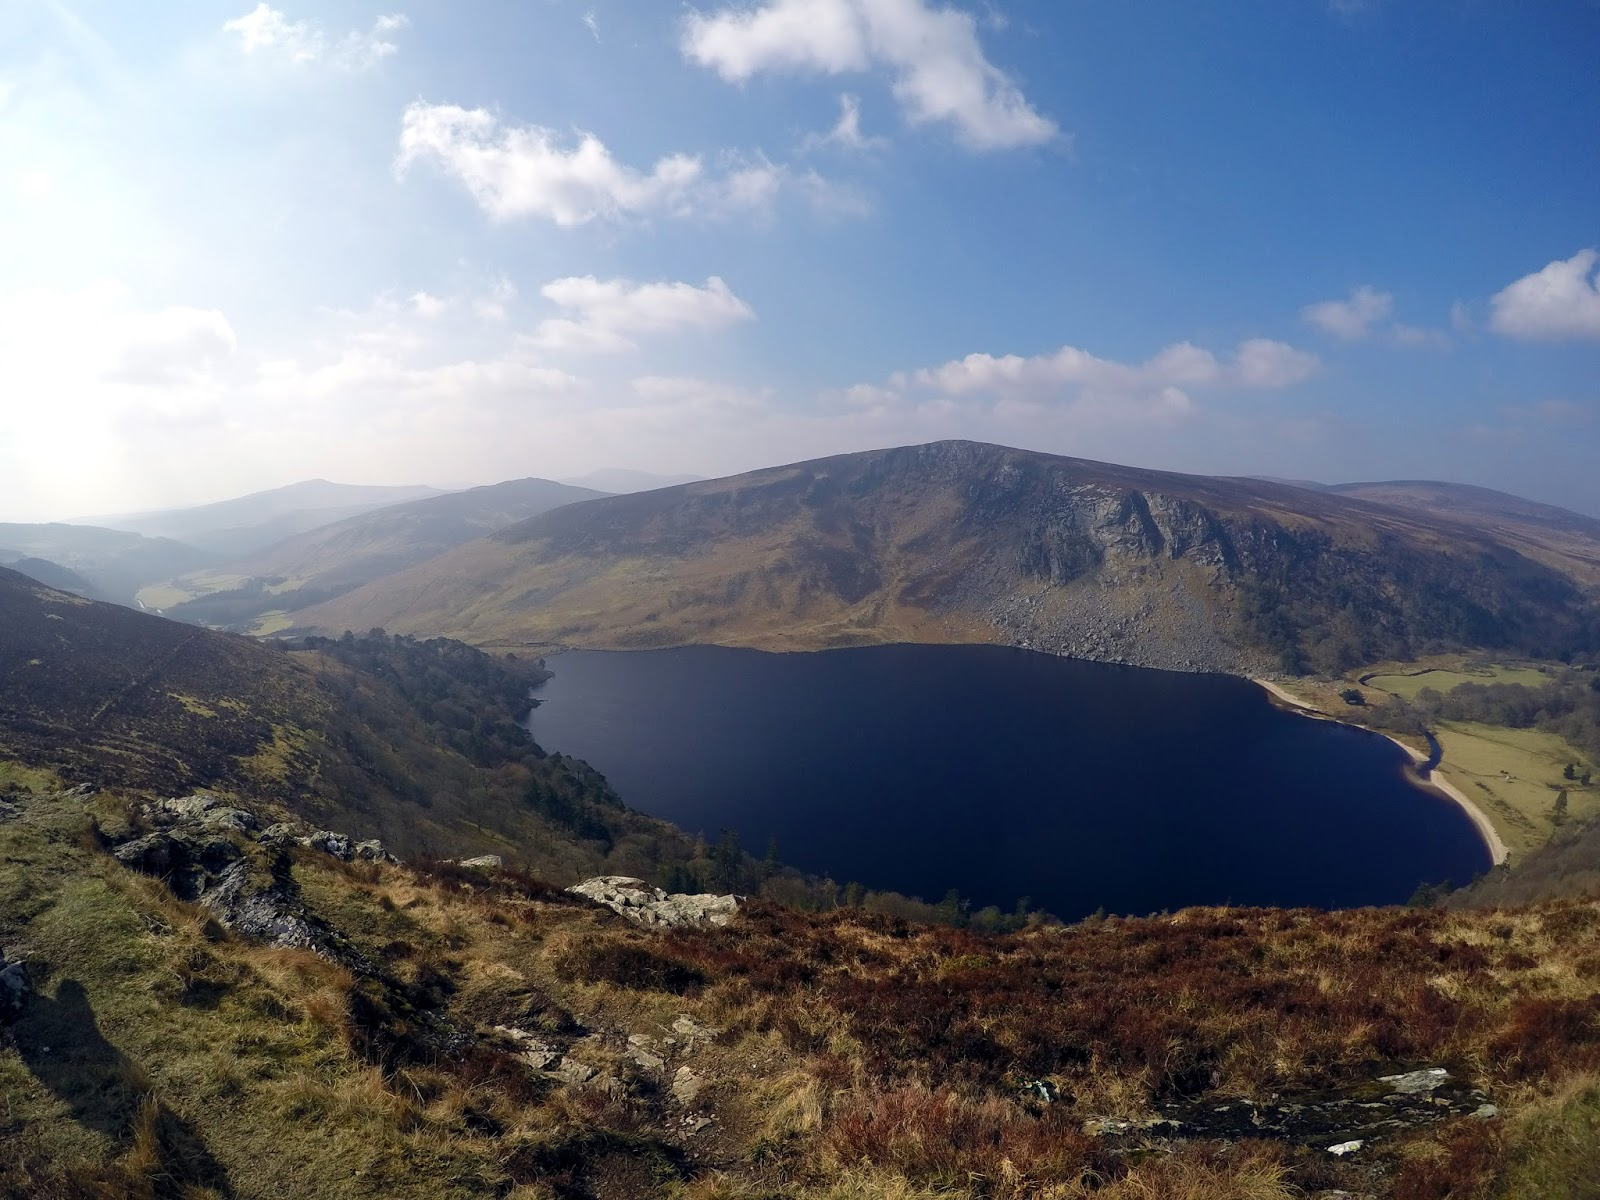 https://www.theroamingrenegades.com/2015/04/exploring-breathtaking-Wicklow-Mountains.html